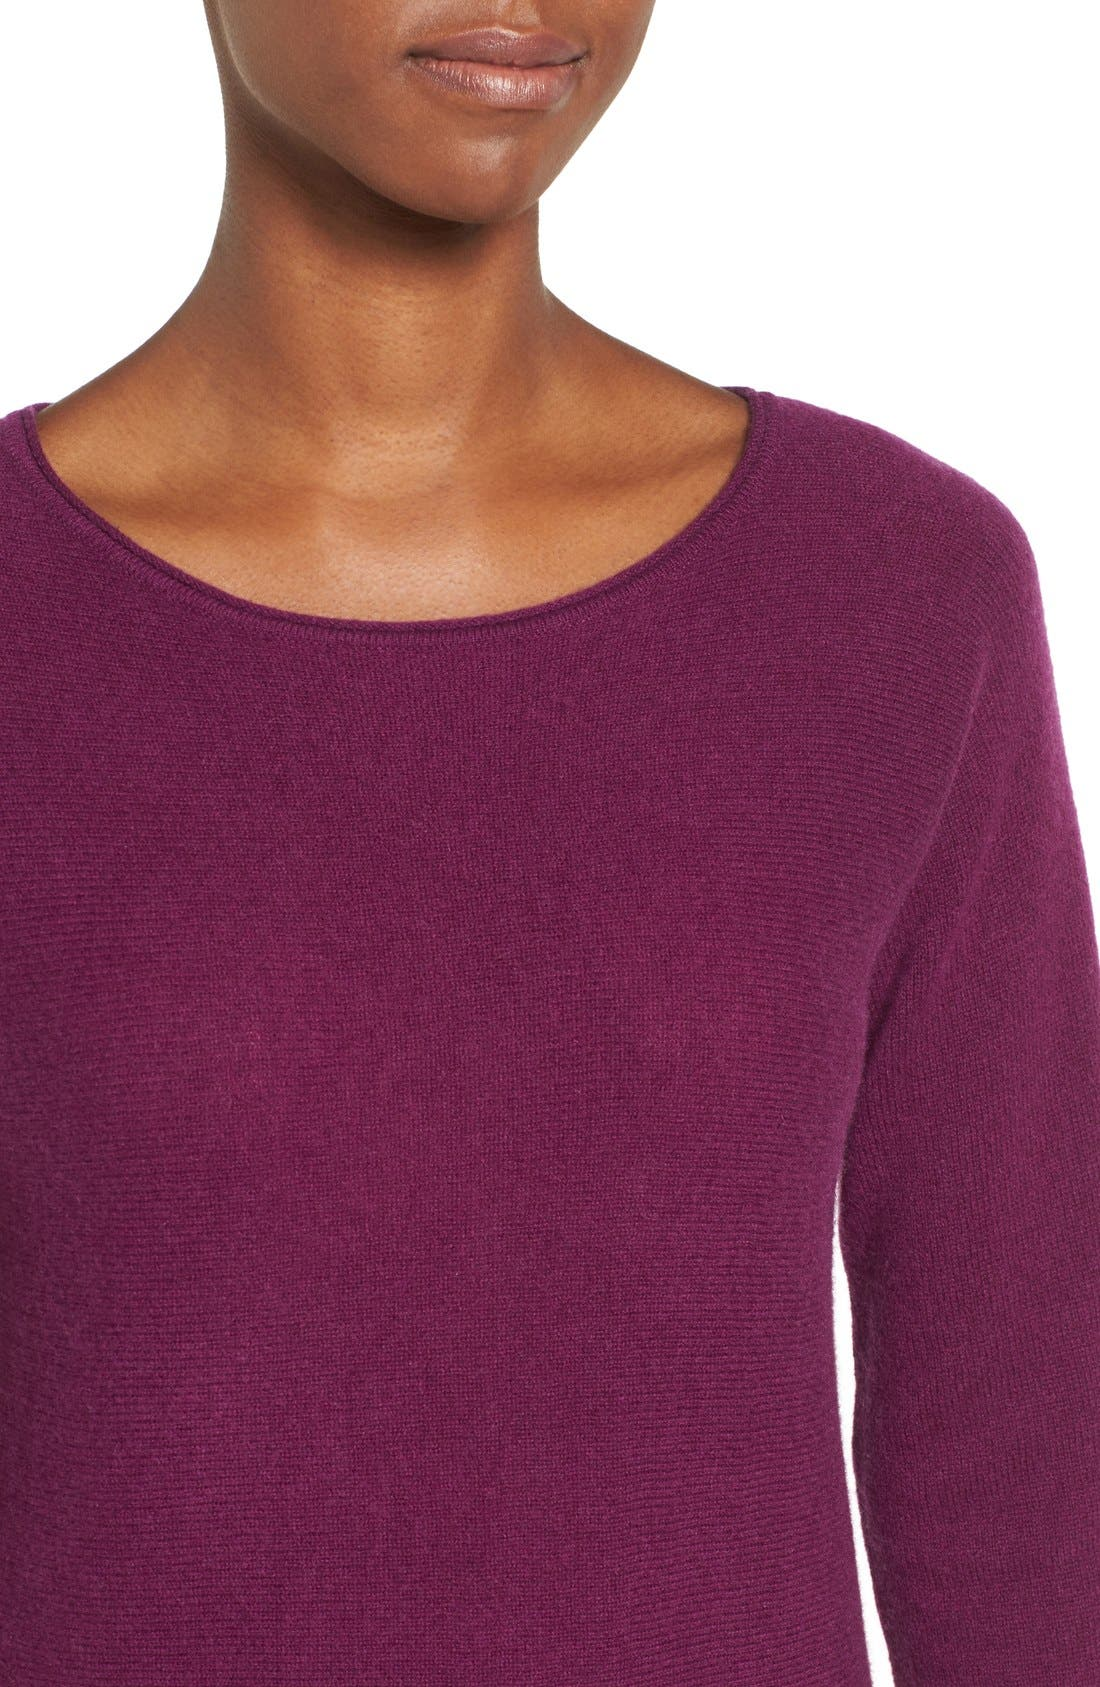 High/Low Wool & Cashmere Tunic Sweater,                             Alternate thumbnail 66, color,